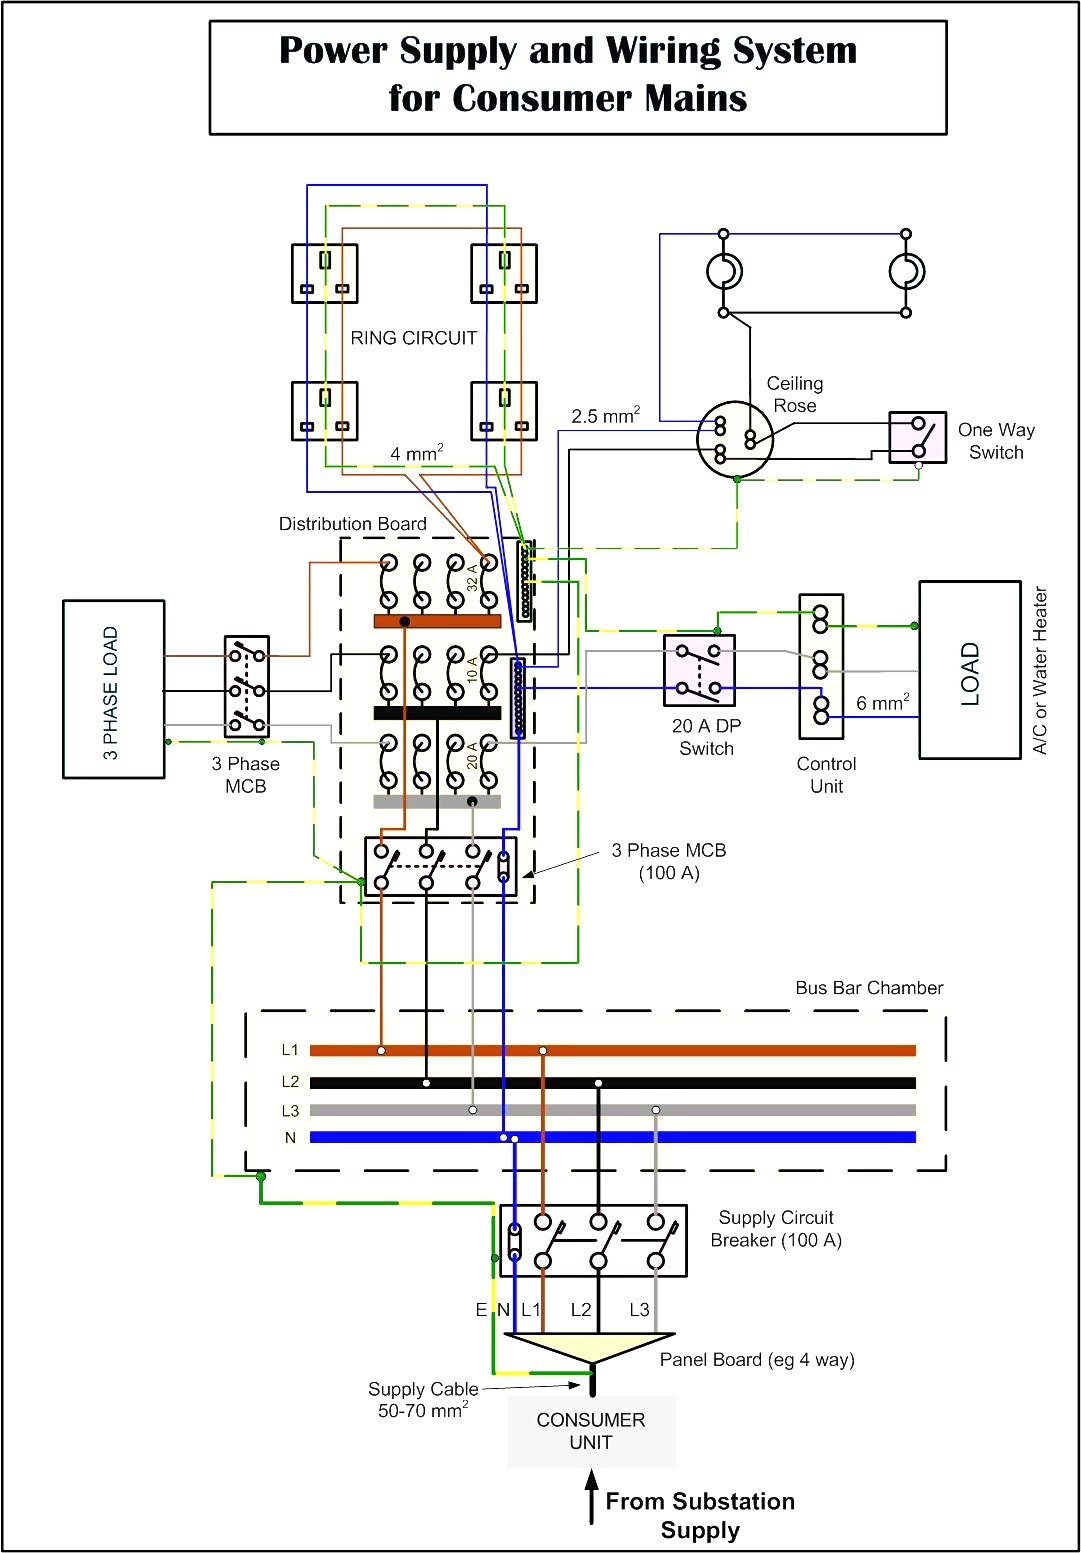 Building Wiring Diagram Luxury Amazing Single Line Diagram Residential Building Ideas Everything